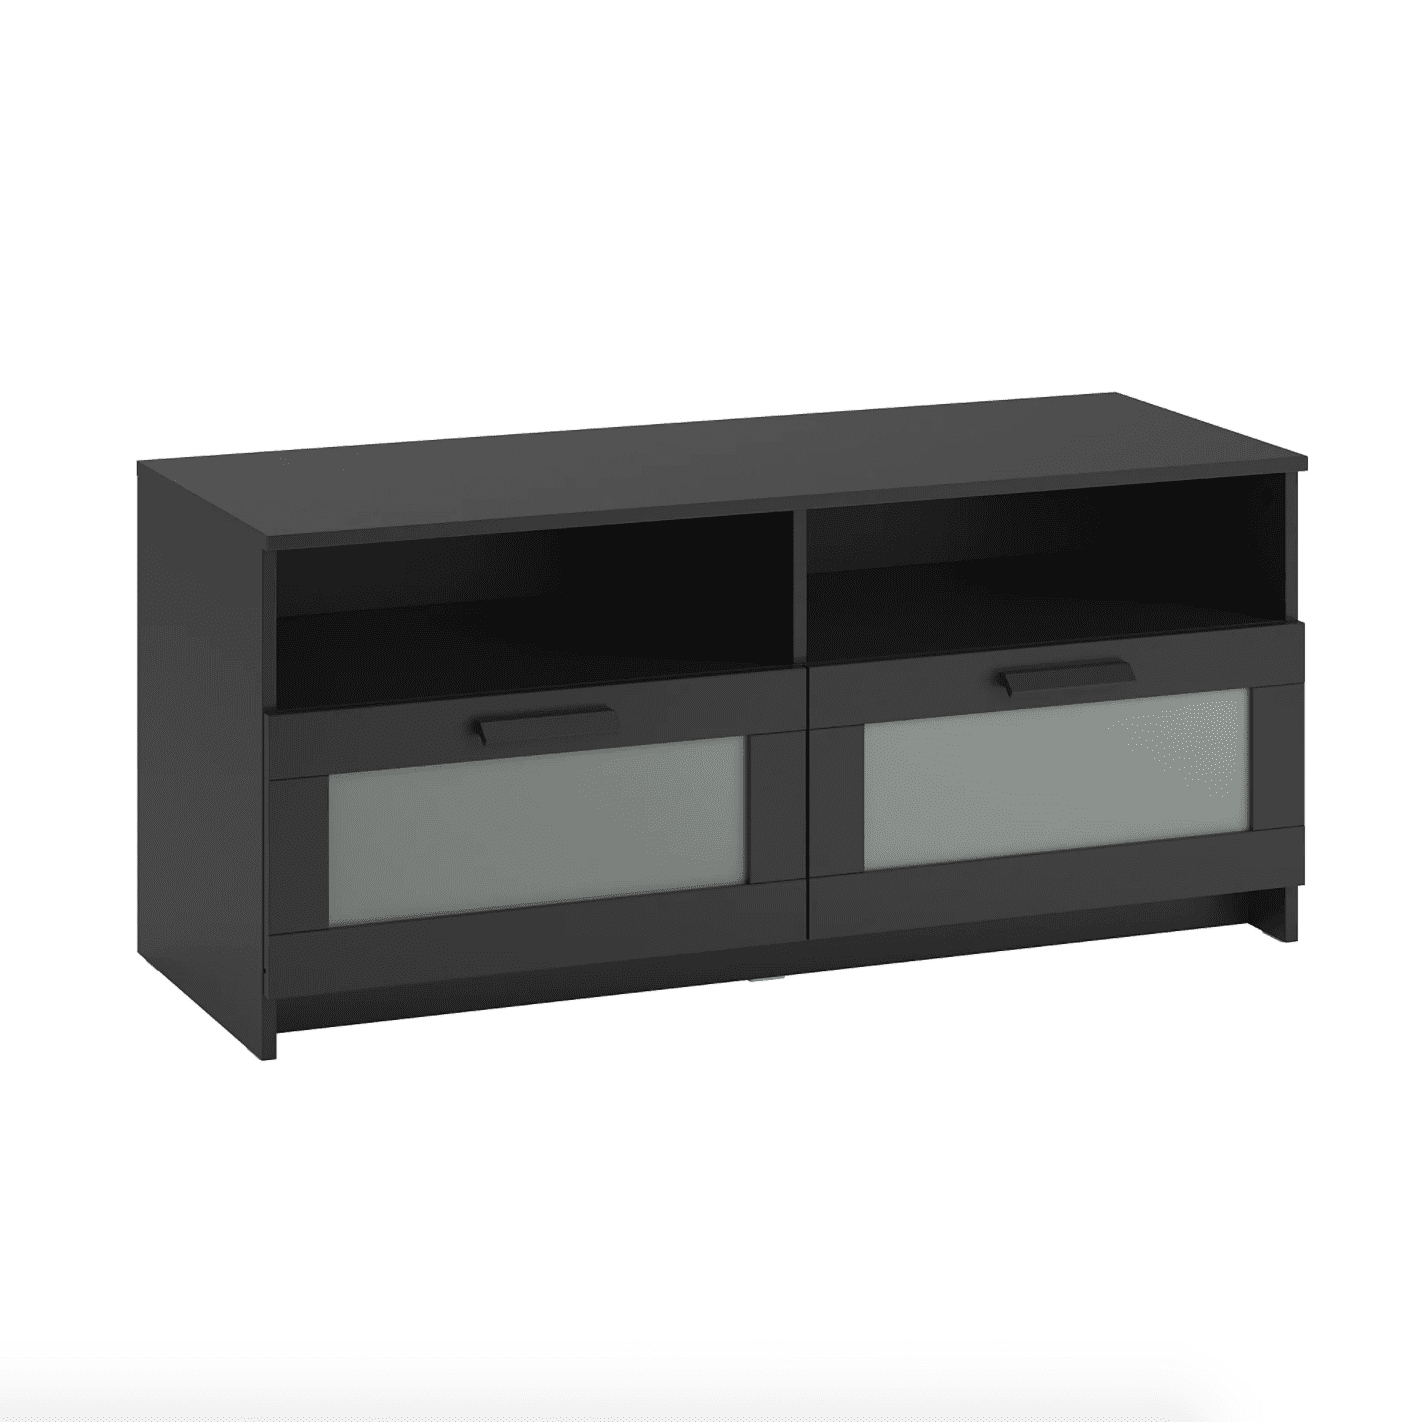 The 8 Best Tv Stands Of 2020 Within Eutropios Tv Stand With Electric Fireplace Included (View 9 of 20)